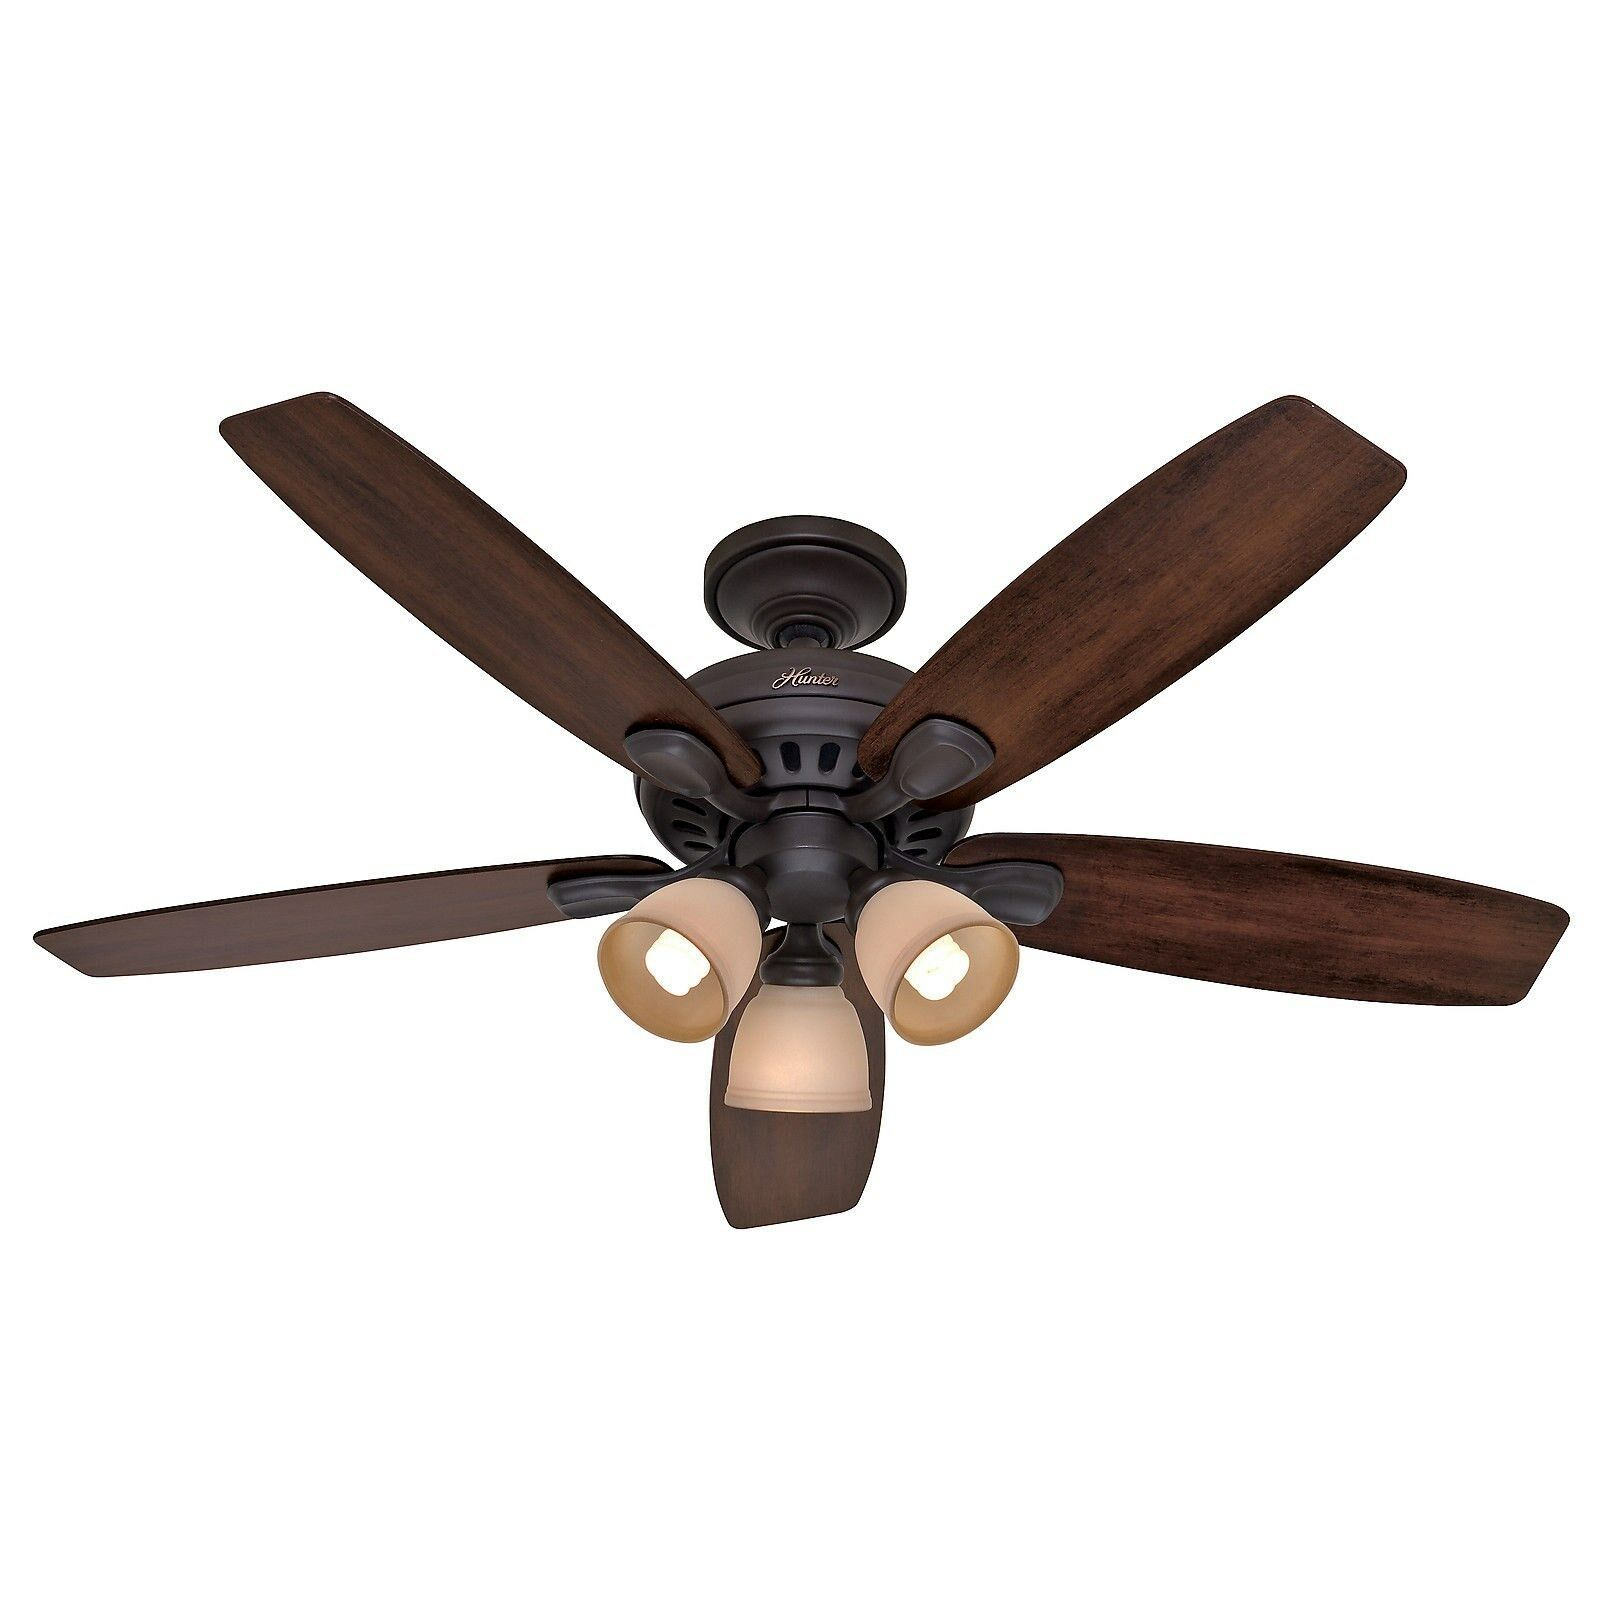 Hunter 52 in new bronze ceiling fan with light remote - Pictures of ceiling fans ...